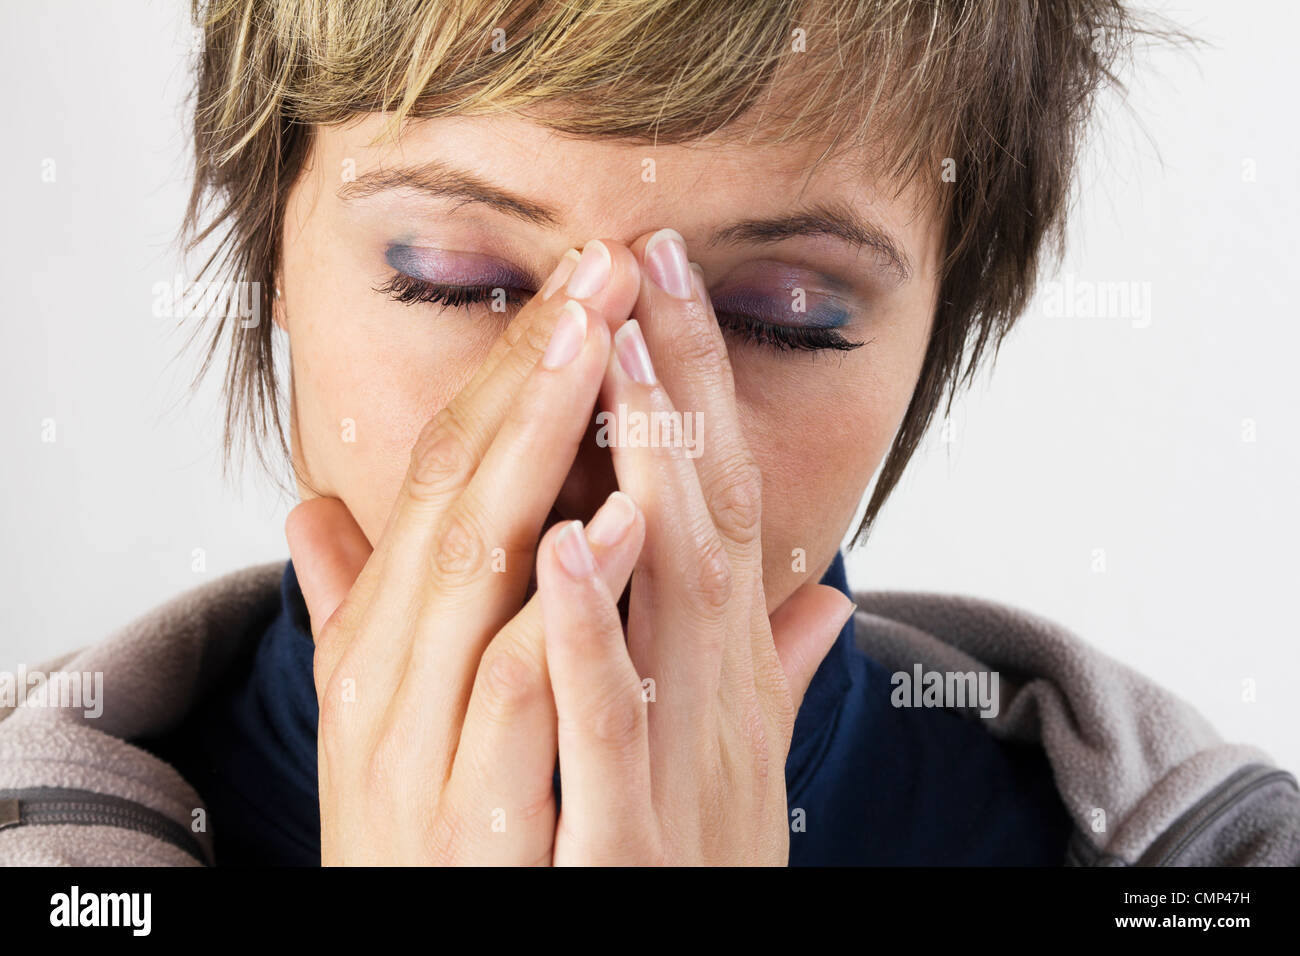 Exhausted young woman holding her hands in front of her her face - female portrait with closed eyes. Studio shot Stock Photo